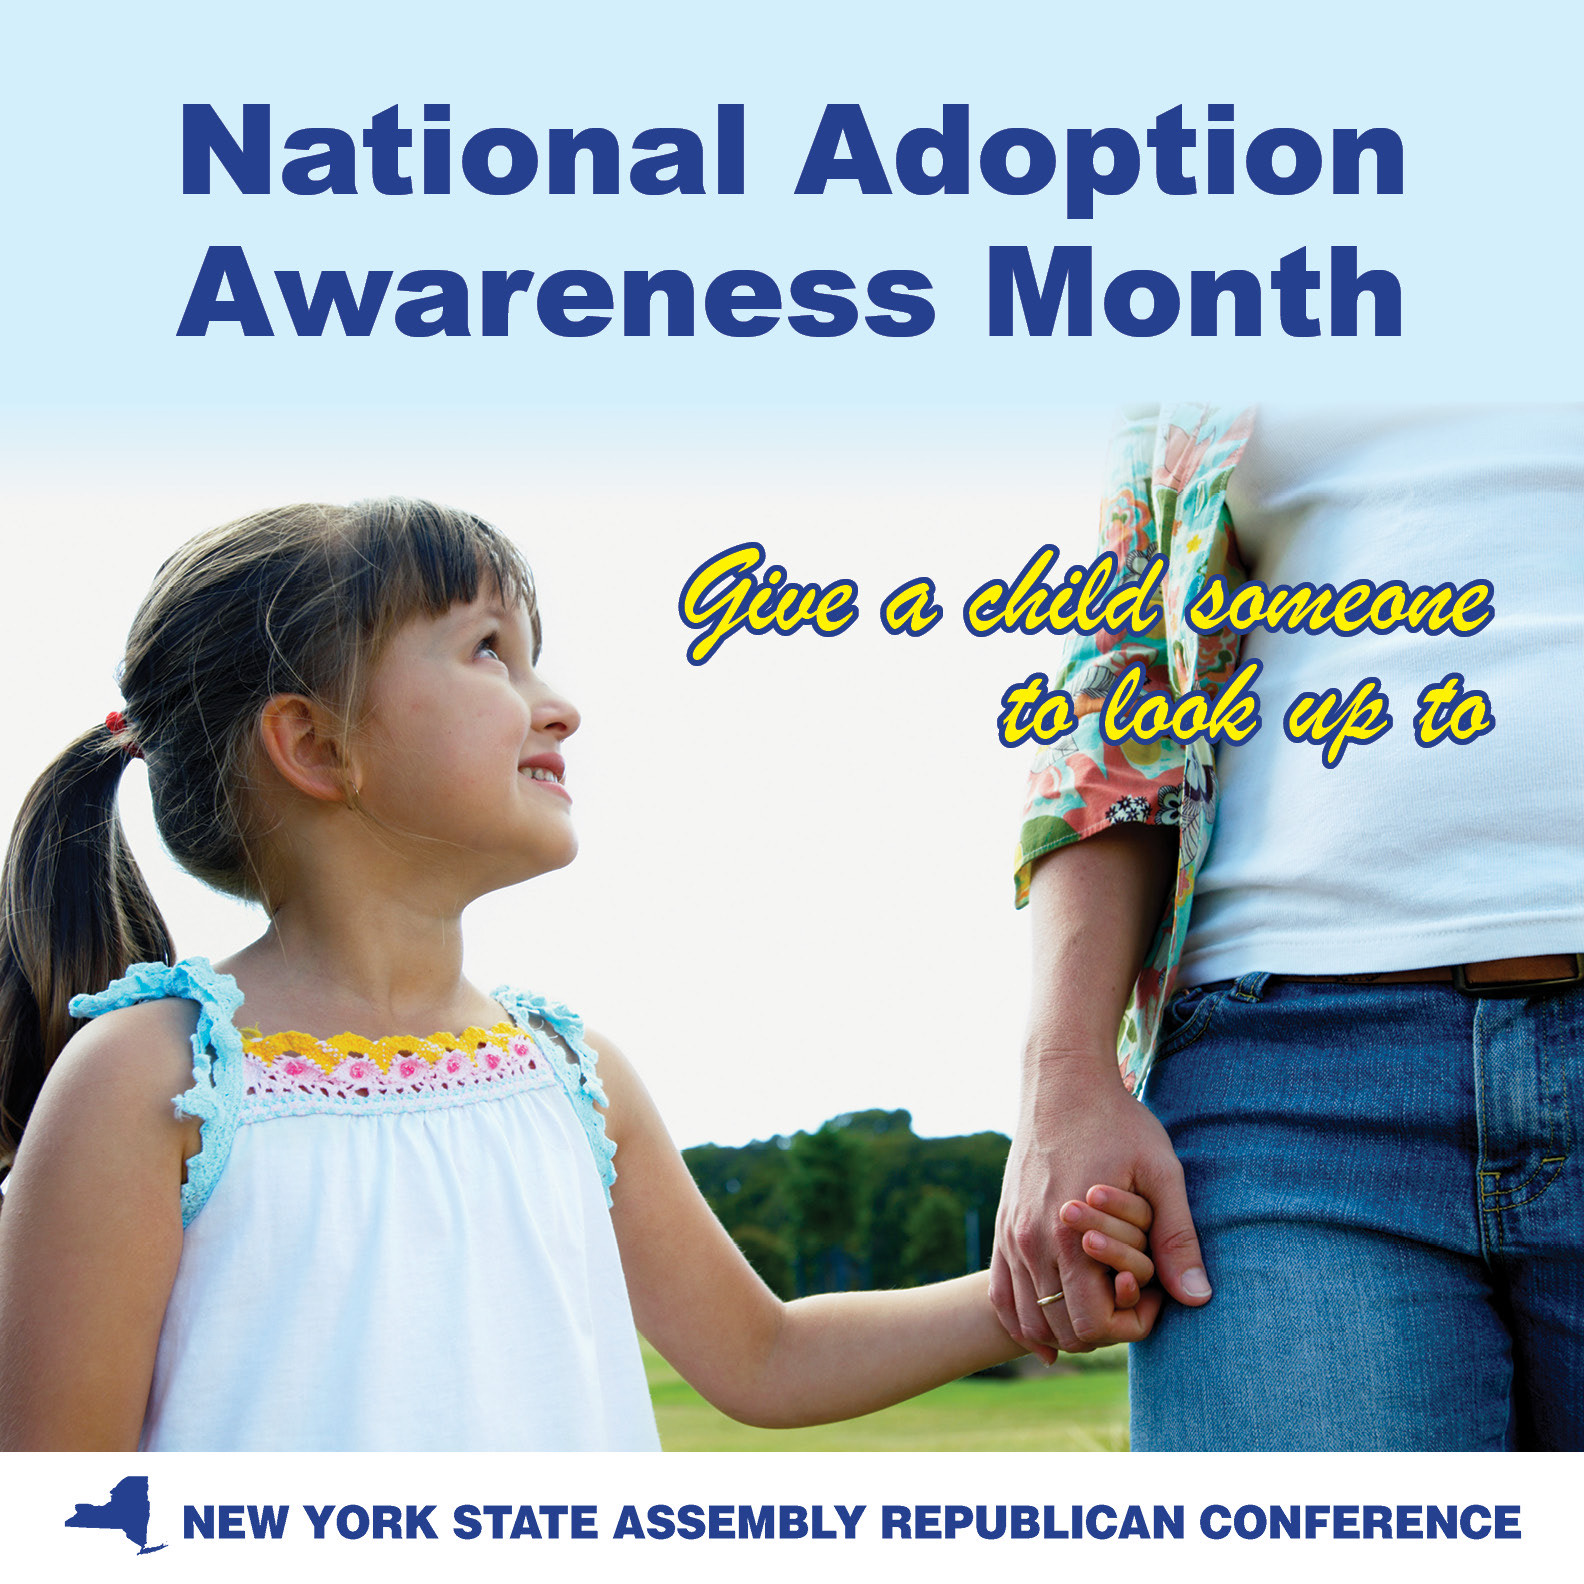 Adoption_Month_11-1-2020.jpg